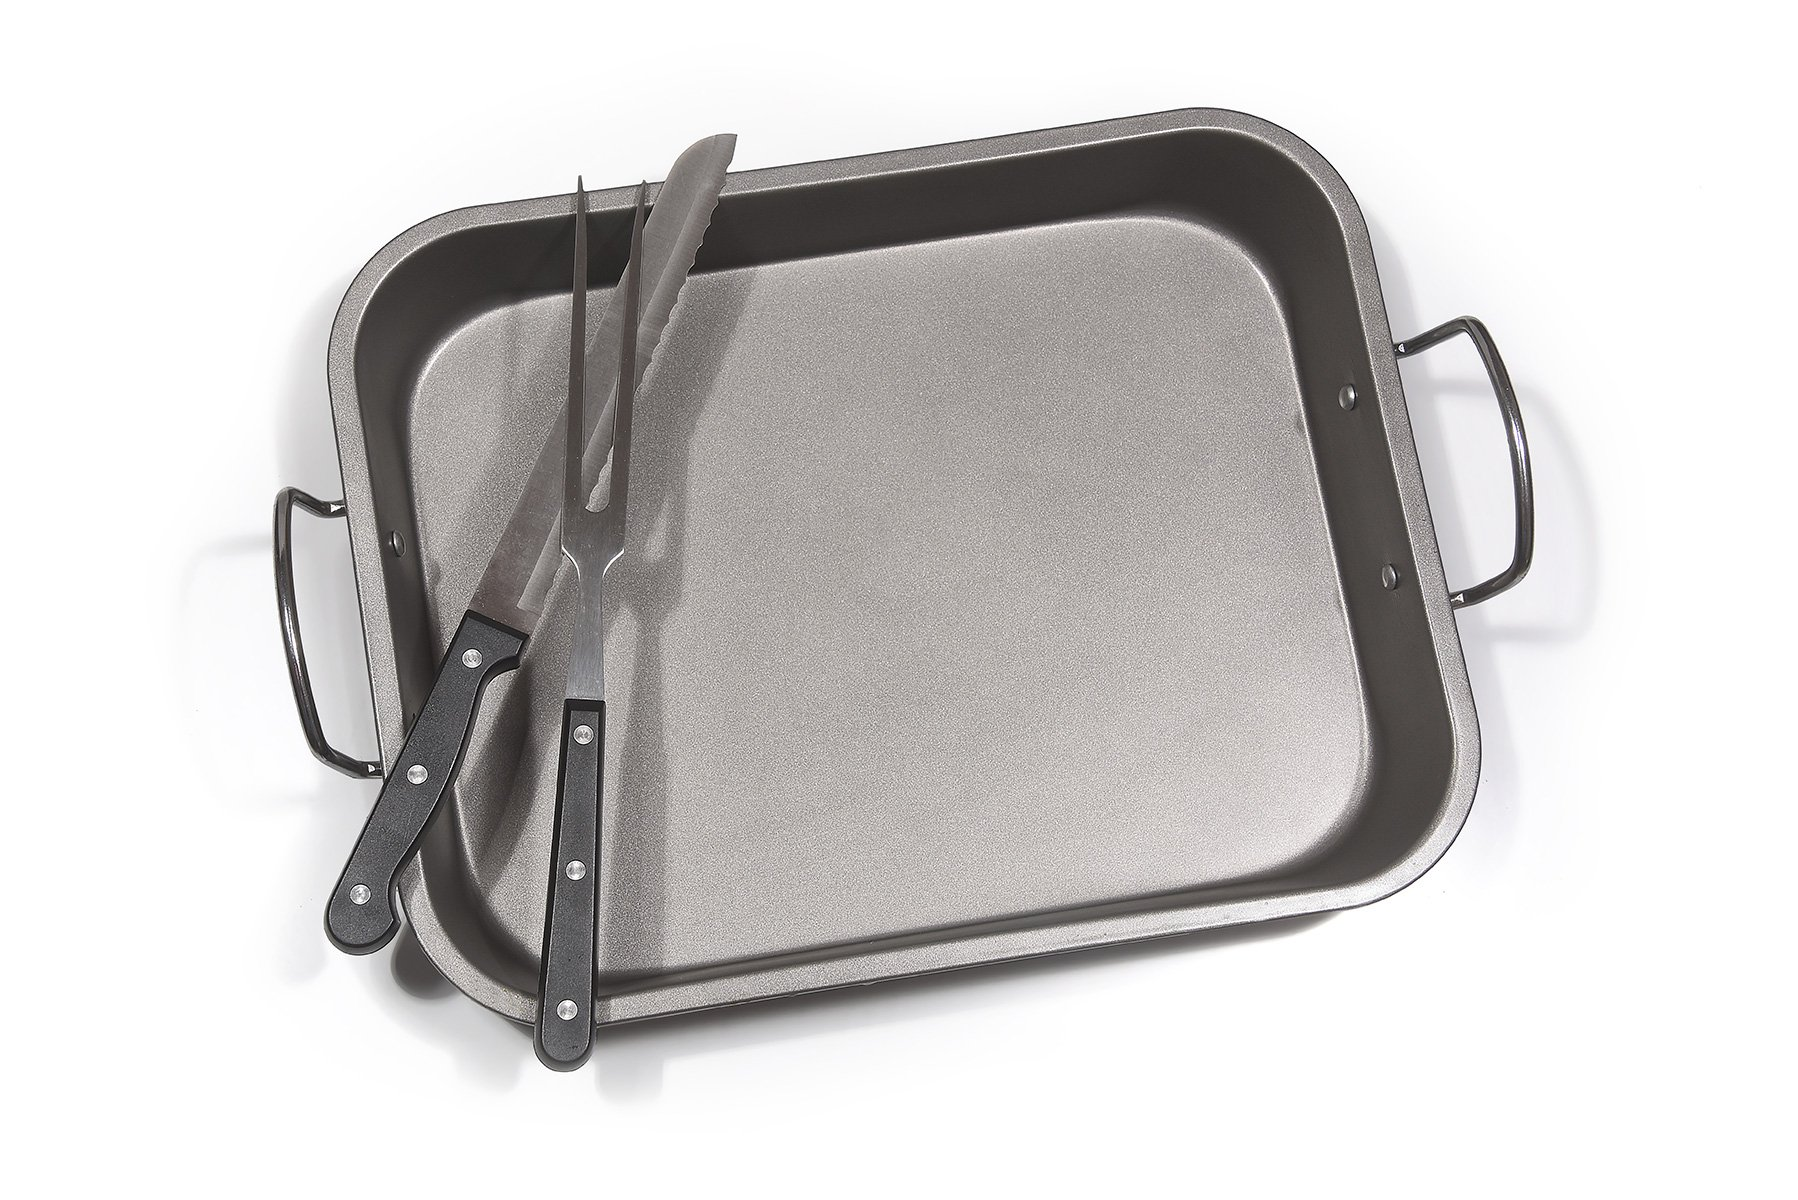 Fox Home Roasting Pan Set , Non-Stick, Carbon Steel Baking Dish With Bonus Serrated Meat Knife, Stainless Steel Fork by FOX HOME (Image #4)